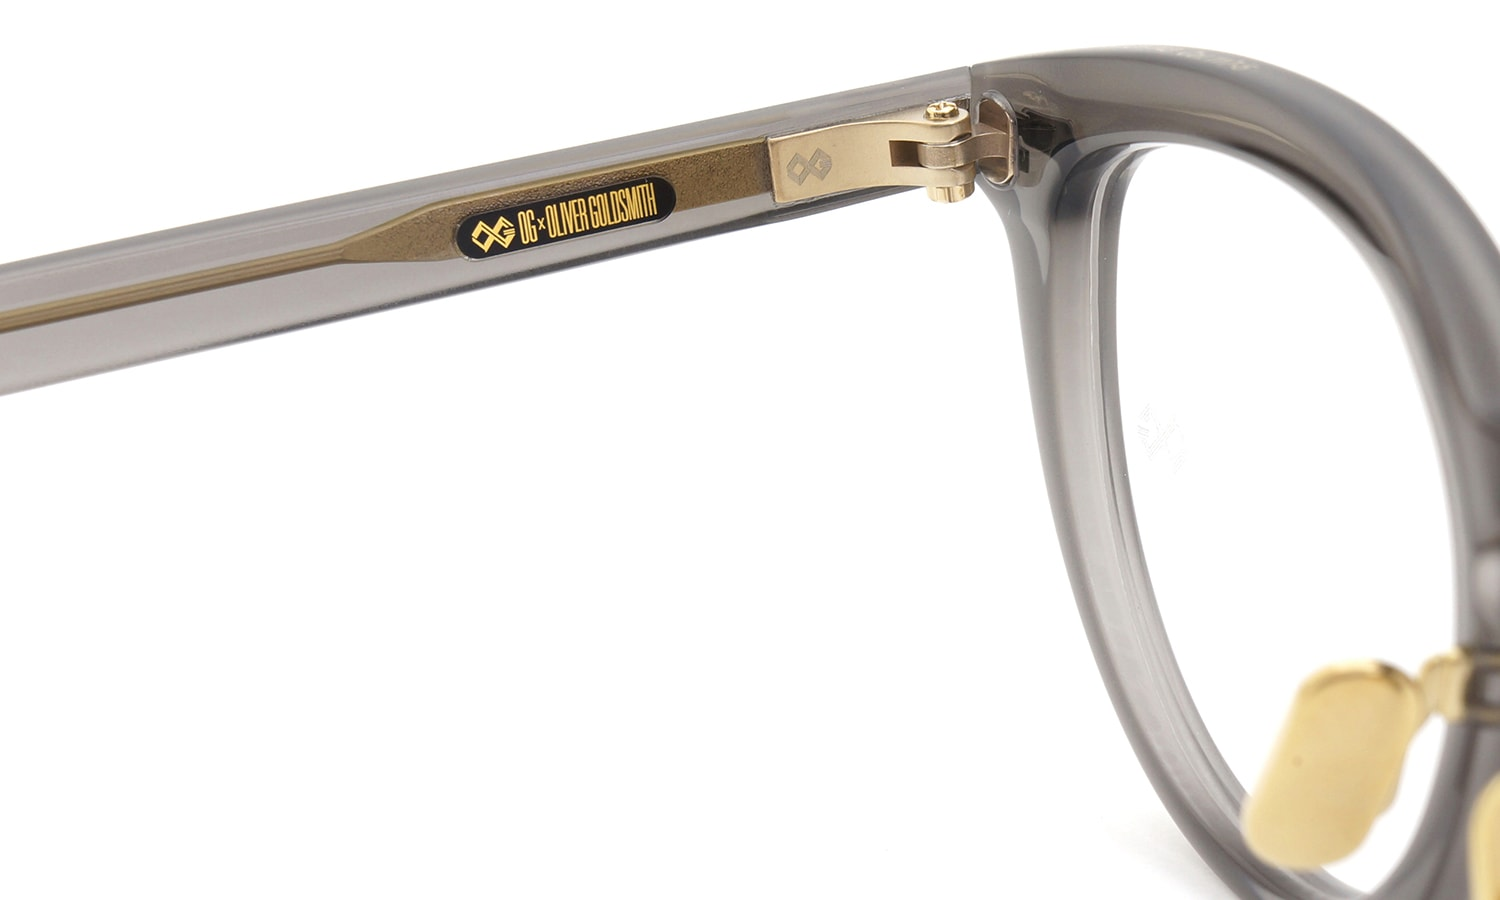 OG × OLIVER GOLDSMITH Re:PELOTA 48 リ:ペロタ 9